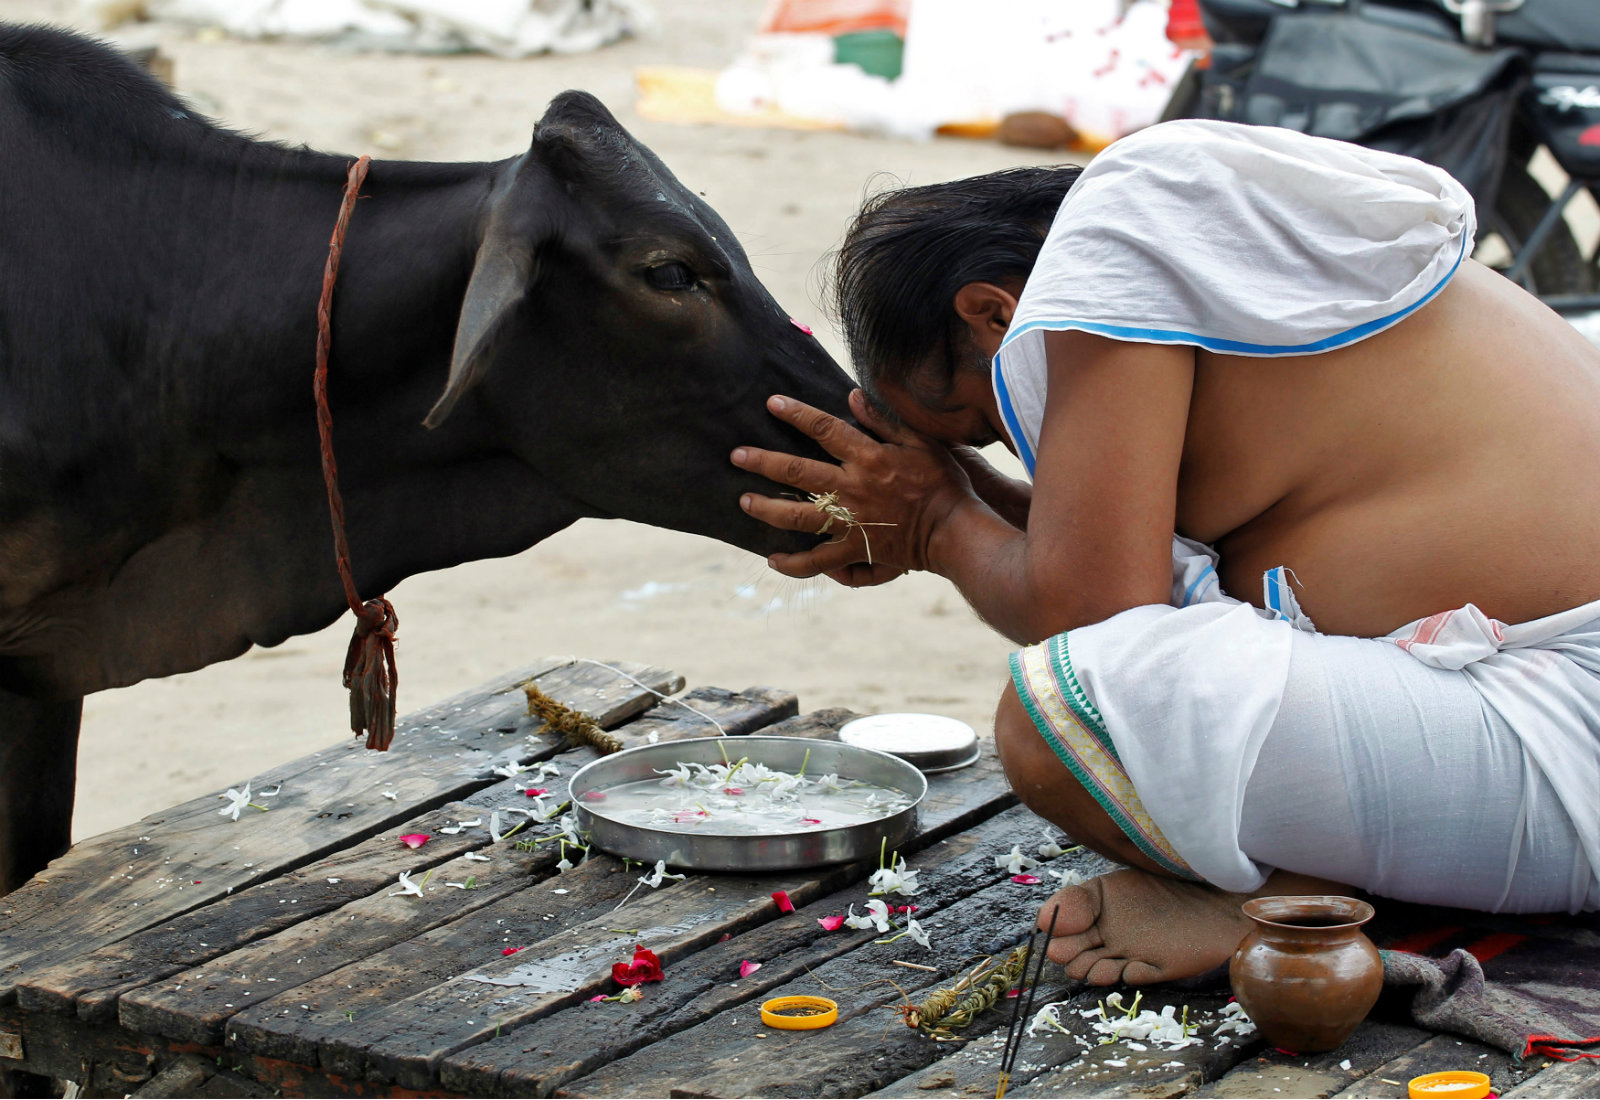 A devotee offers prayers to a cow after taking a holy dip in Allahabad, Uttar Pradesh.